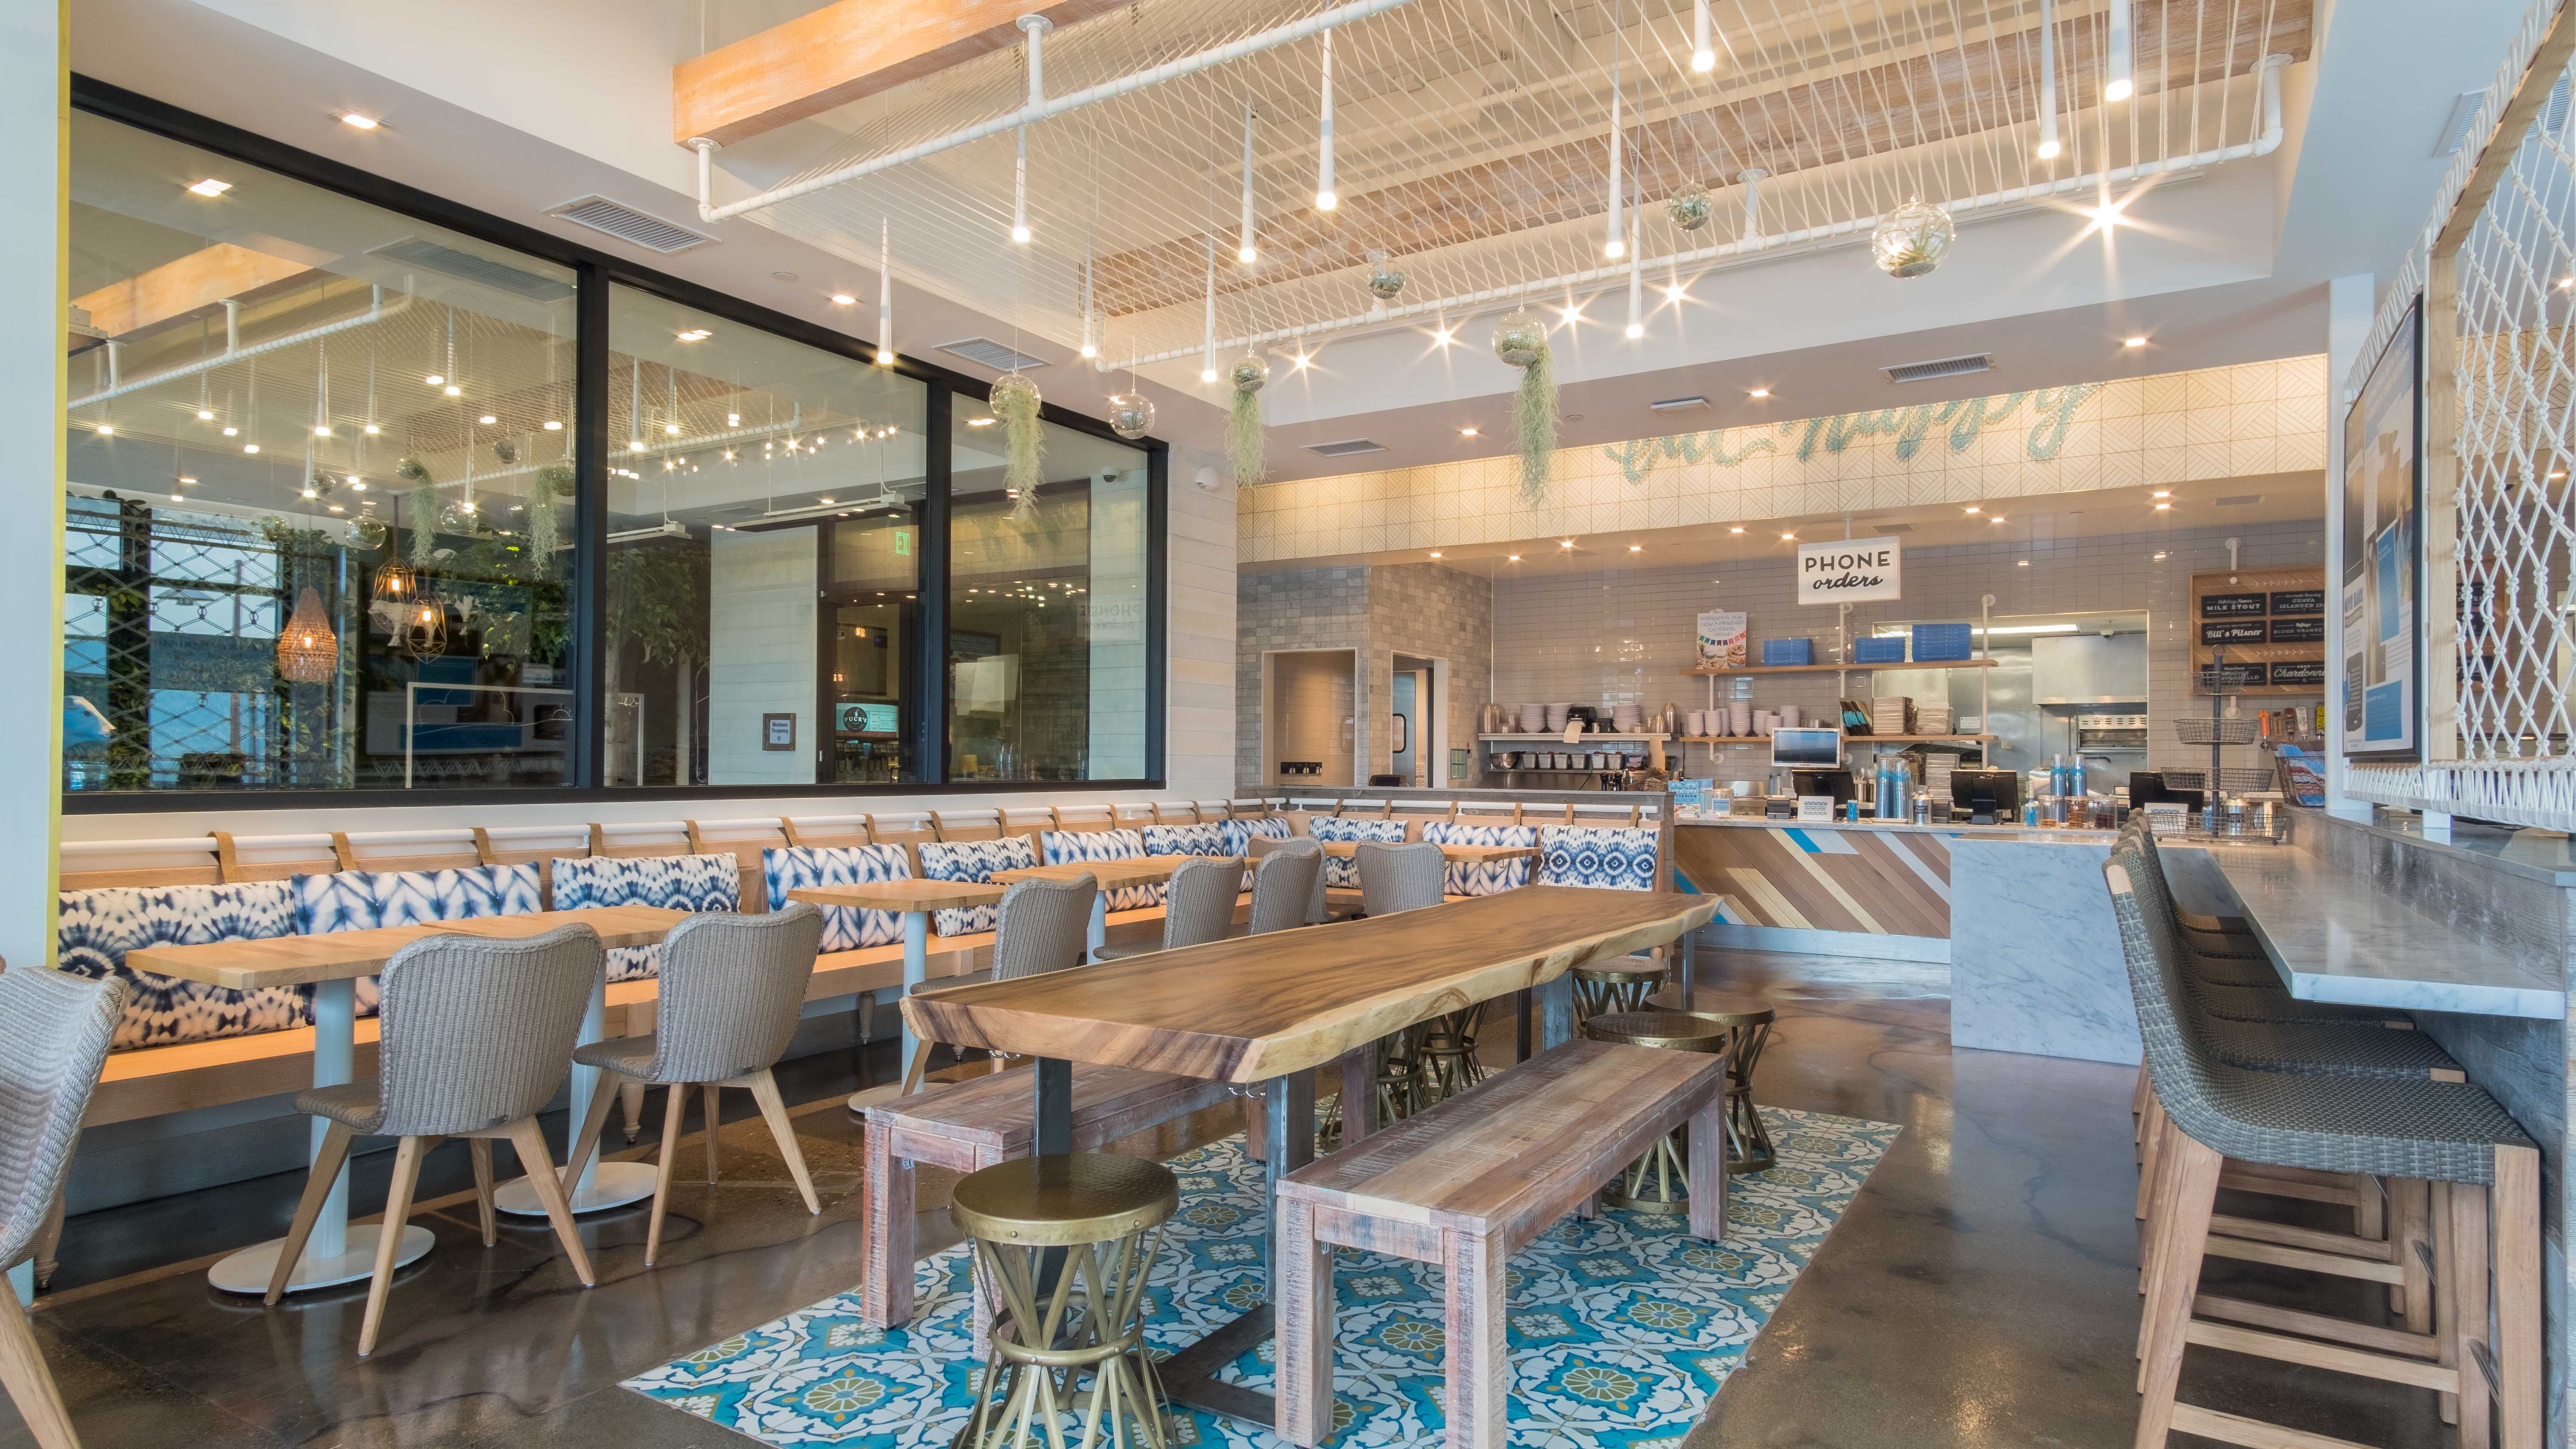 Cucina Enoteca At Del Mar Gourmet Sandwiches And Salads From Mendocino Farms Arrive